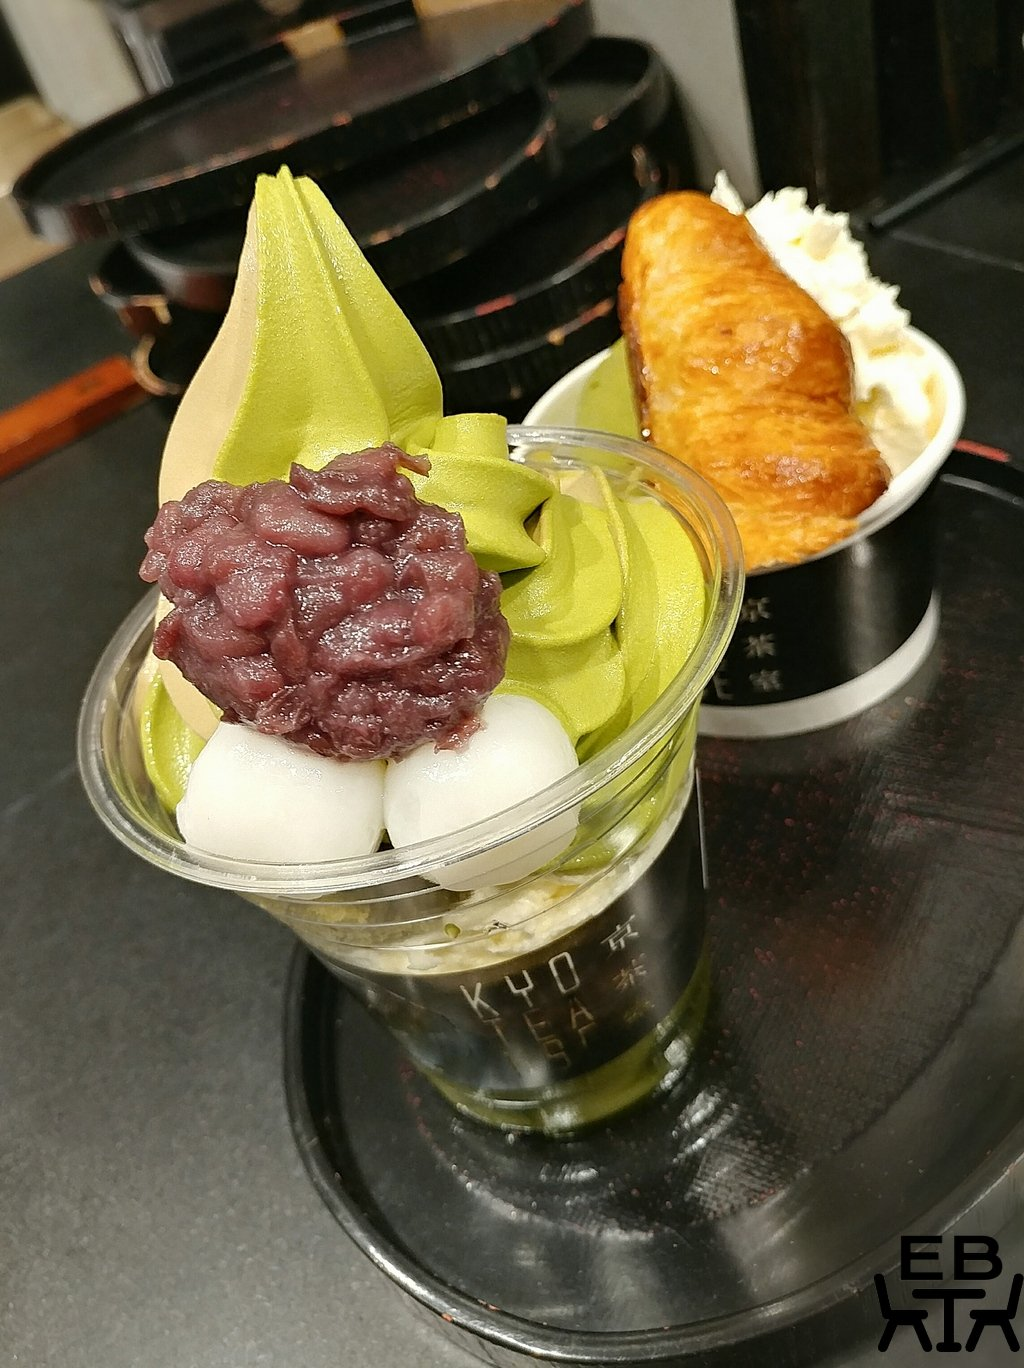 kyo tea house desserts